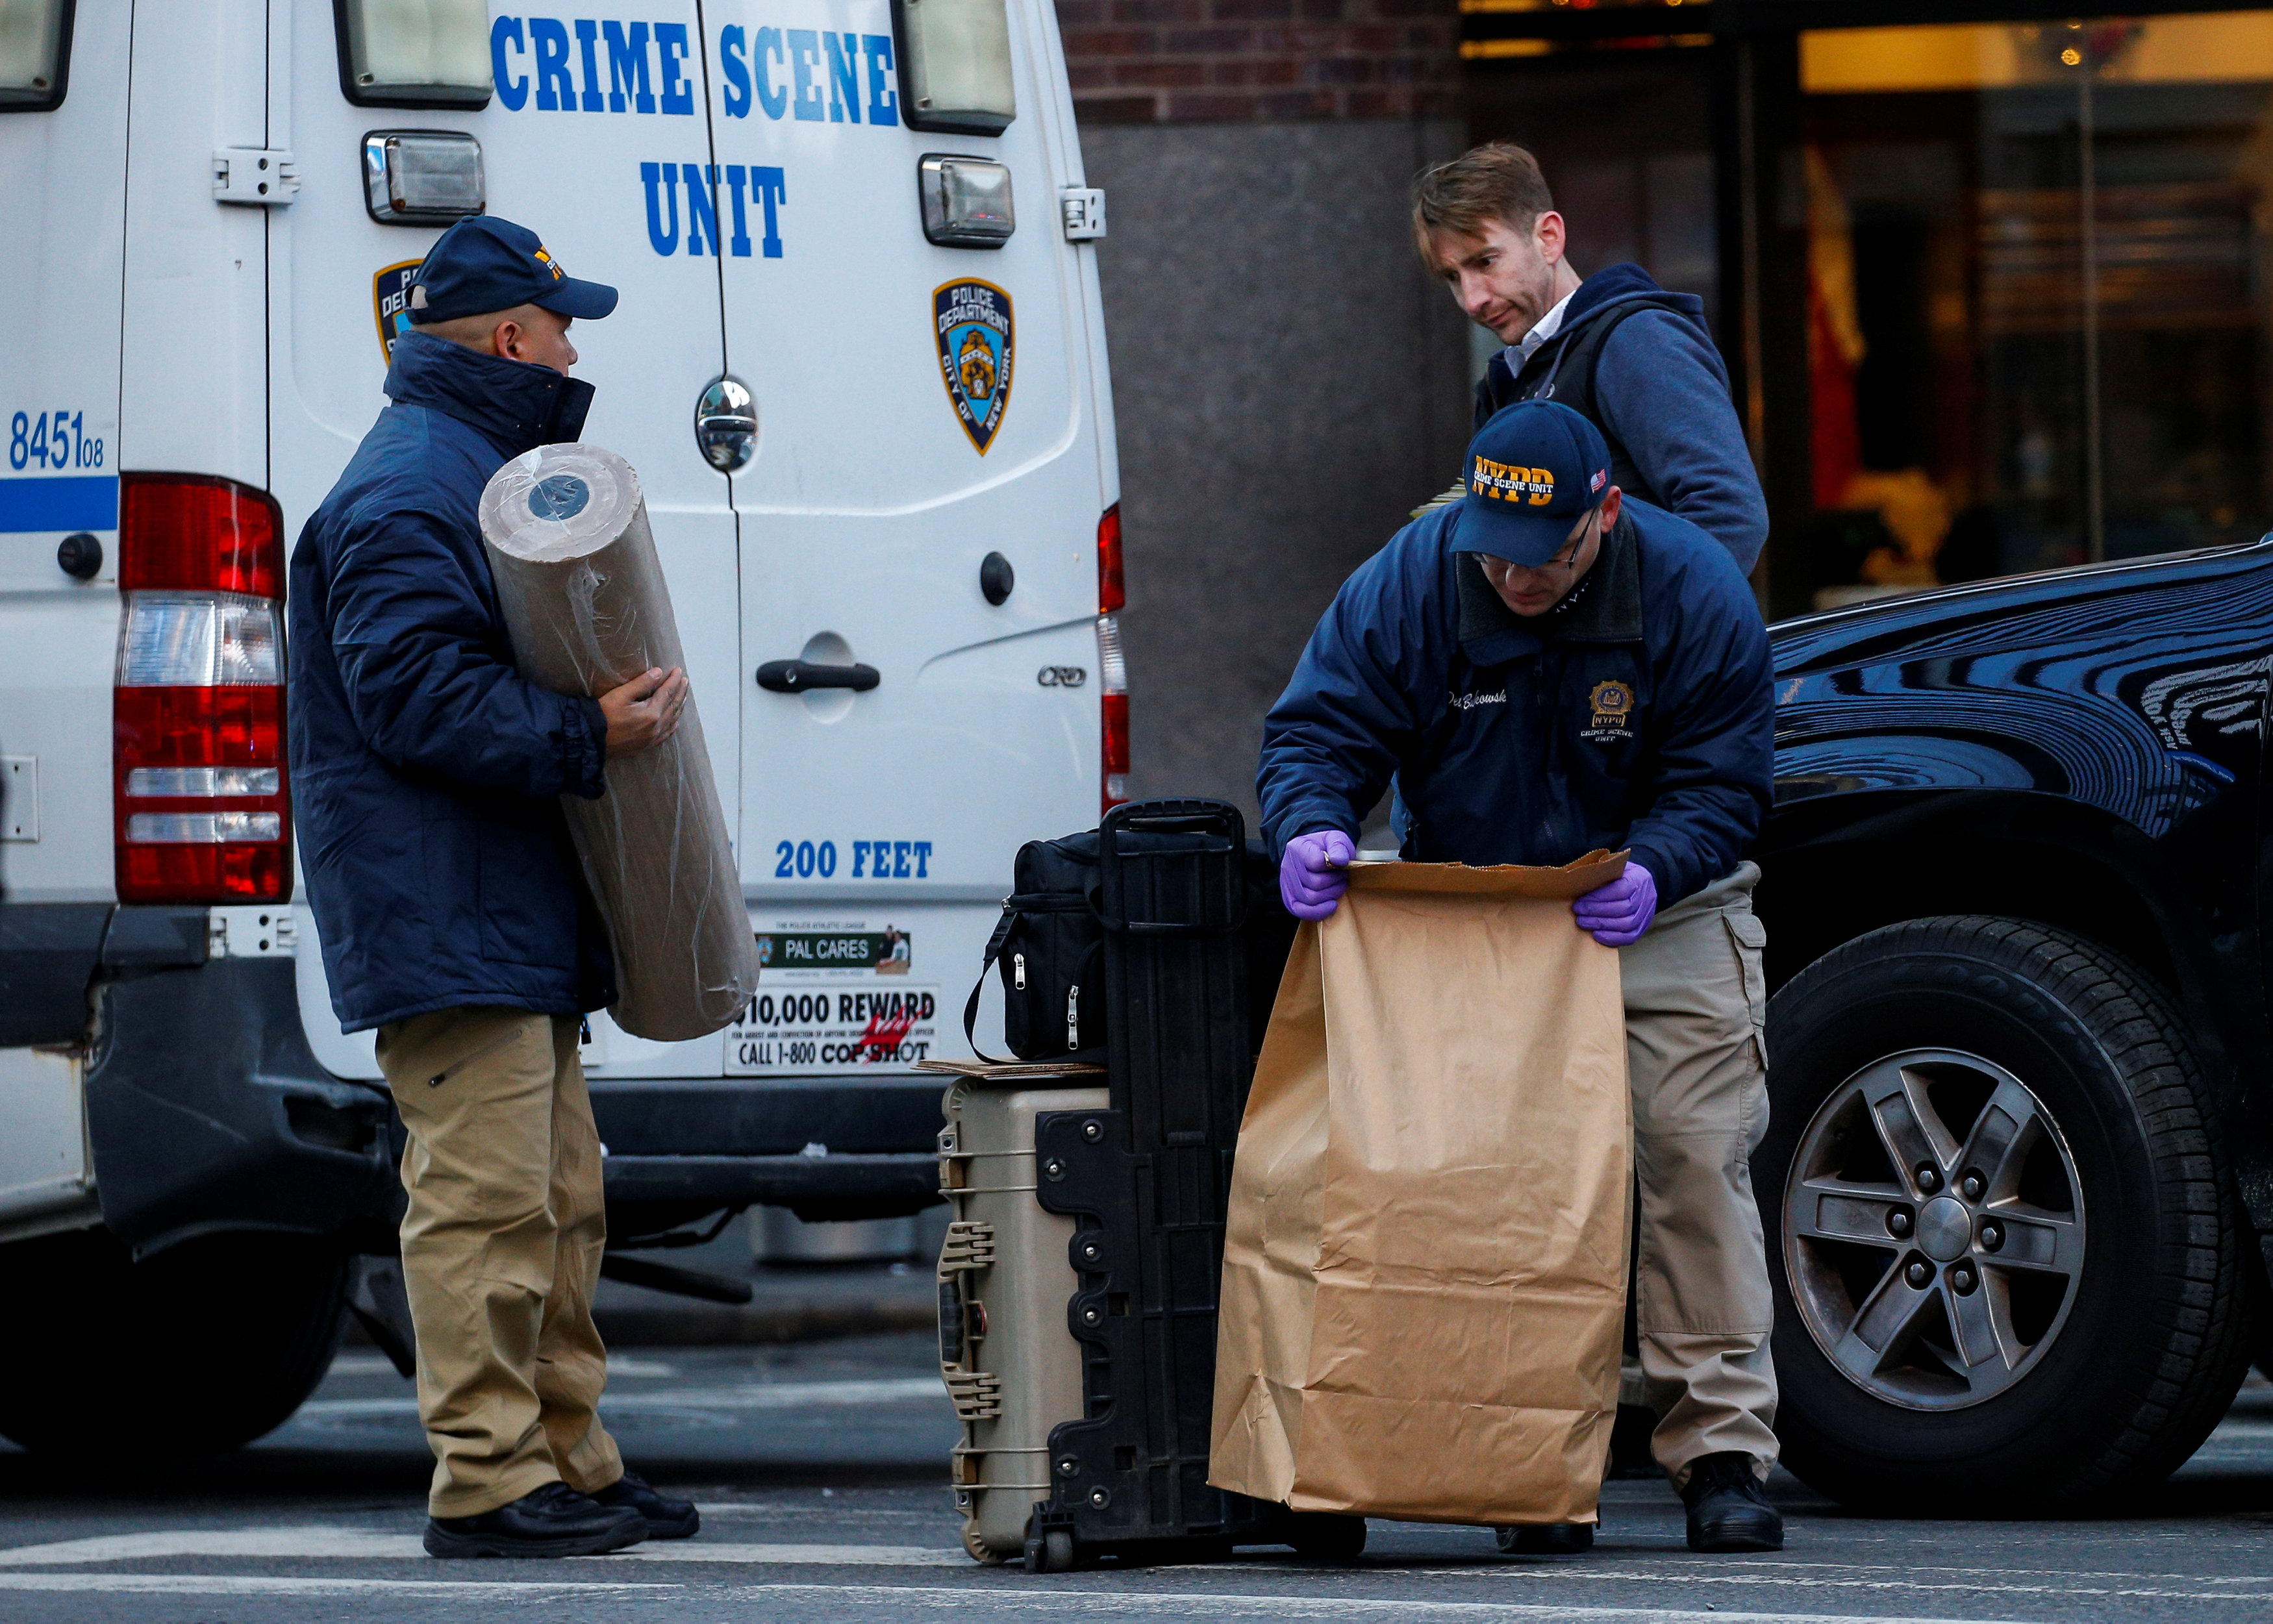 NYPD Crime Scene Investigation team are seen outside the New York Port Authority Bus Terminal, after reports of an explosion, in New York City, U.S., December 11, 2017.